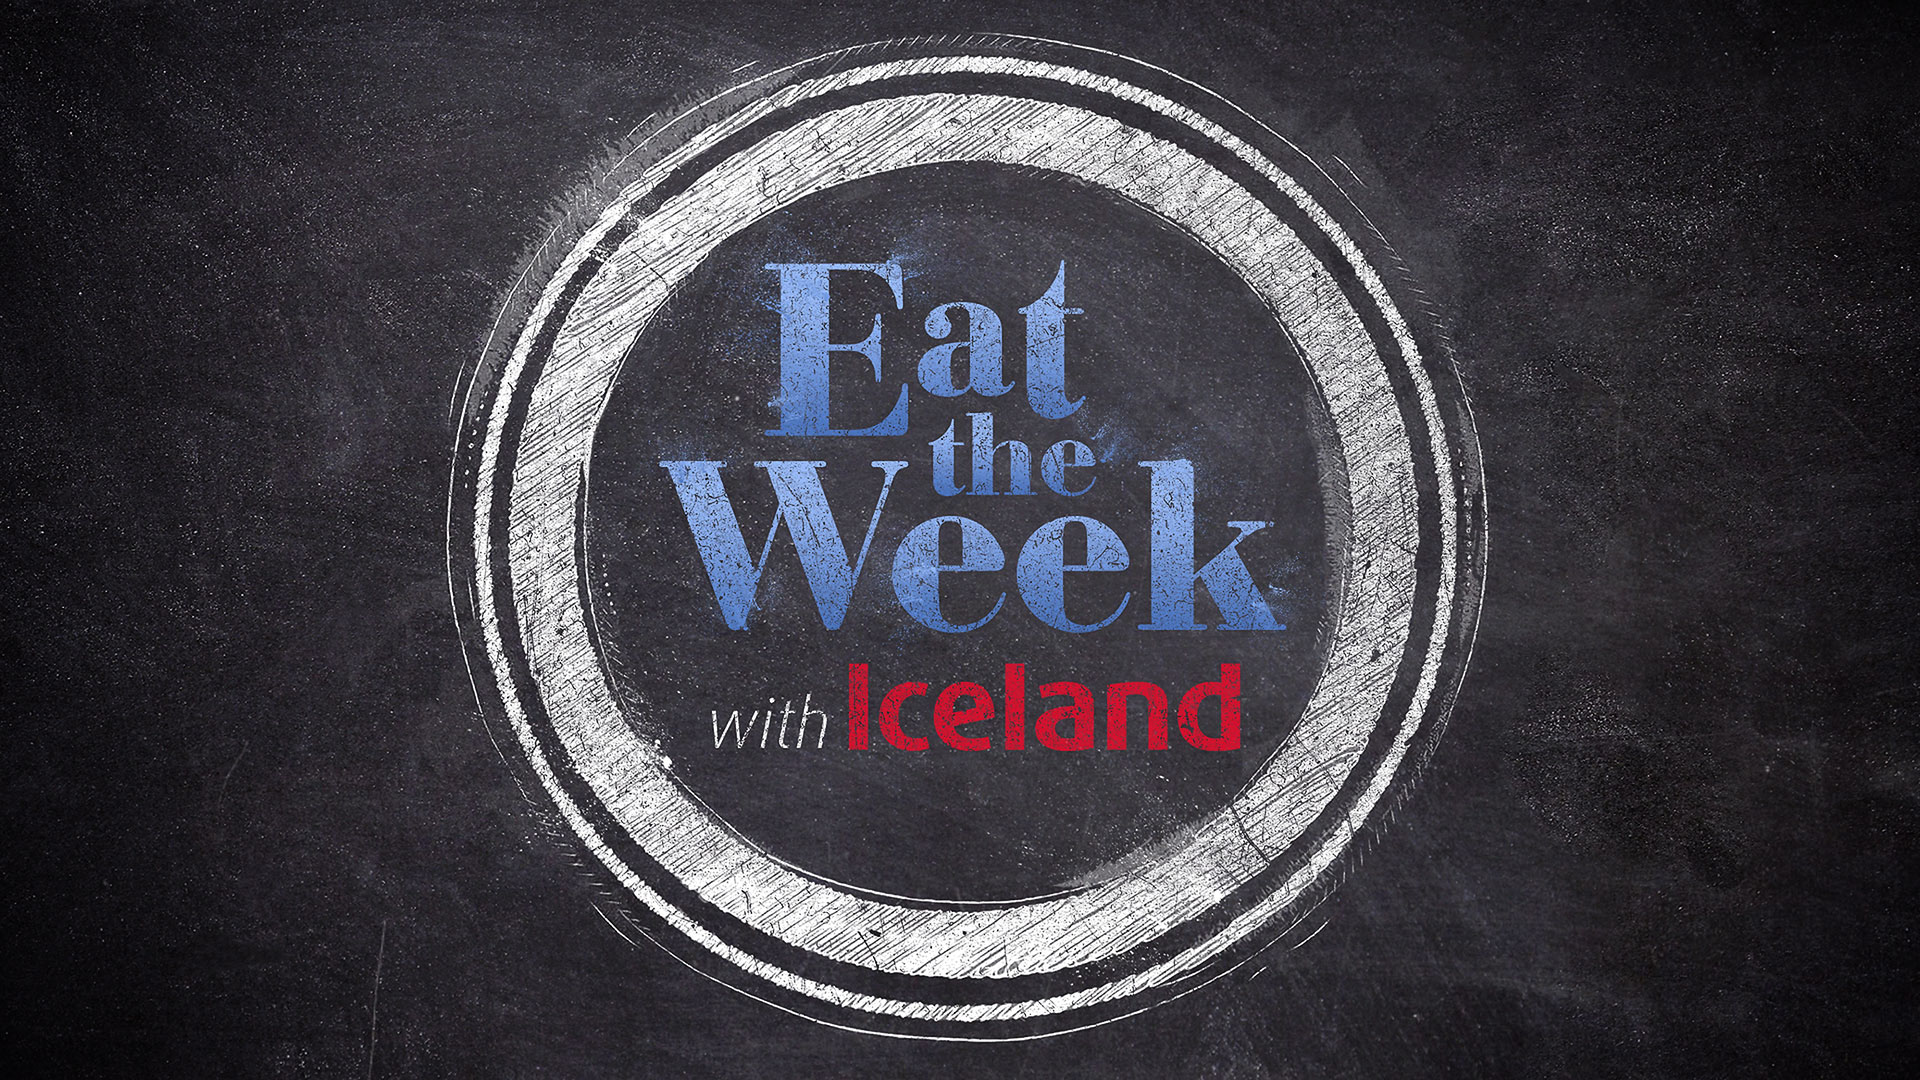 Eat the Week with Iceland Channel 4 © Holey & Moley Ltd